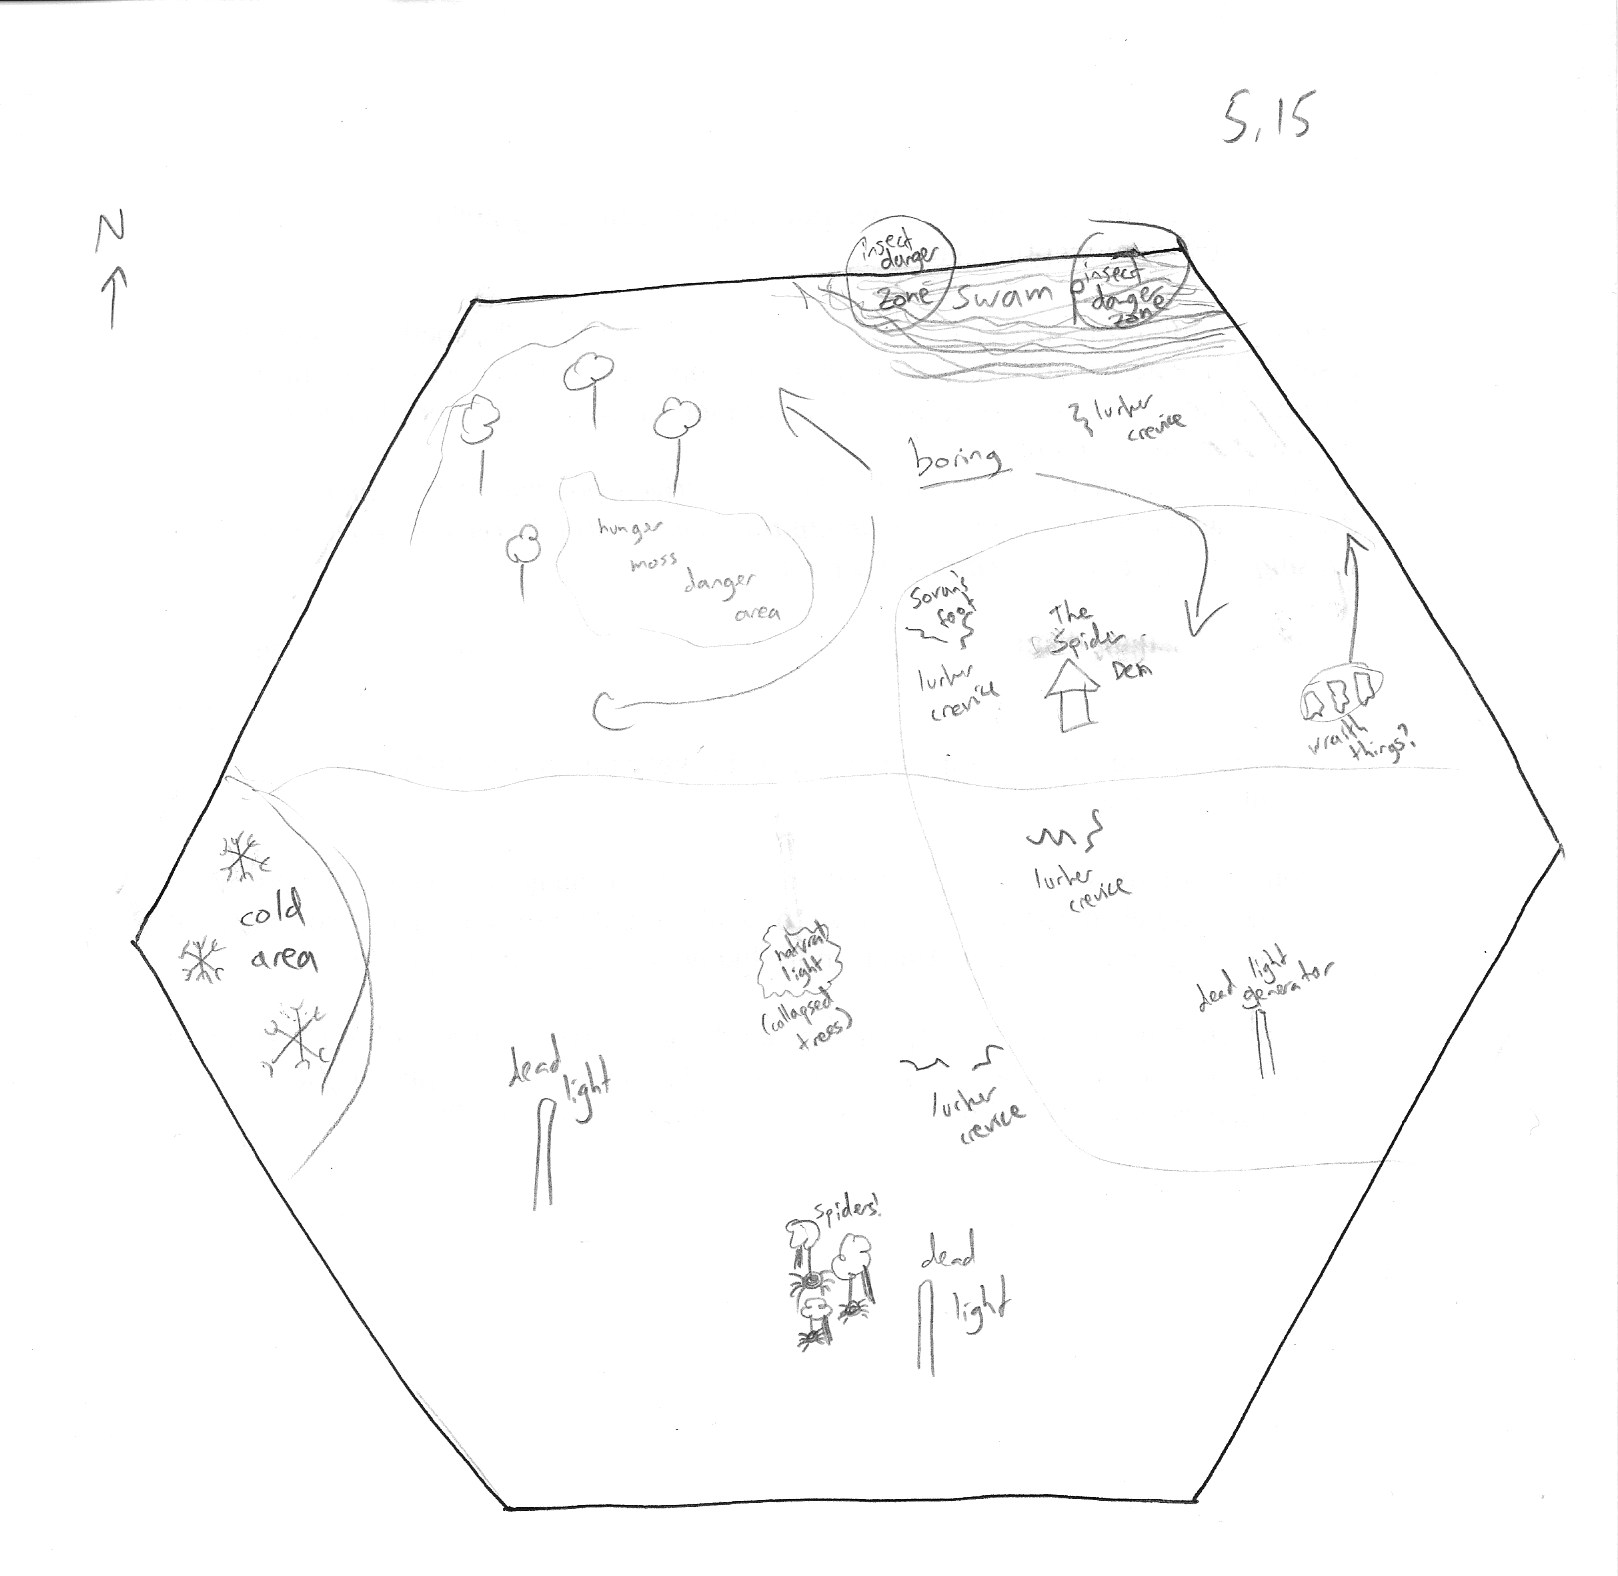 Silanya Adventure Log Obsidian Portal Figure 631 A Physical Block Diagram For Candidate Toaster Concept Thorough Exploration Of Hex 515